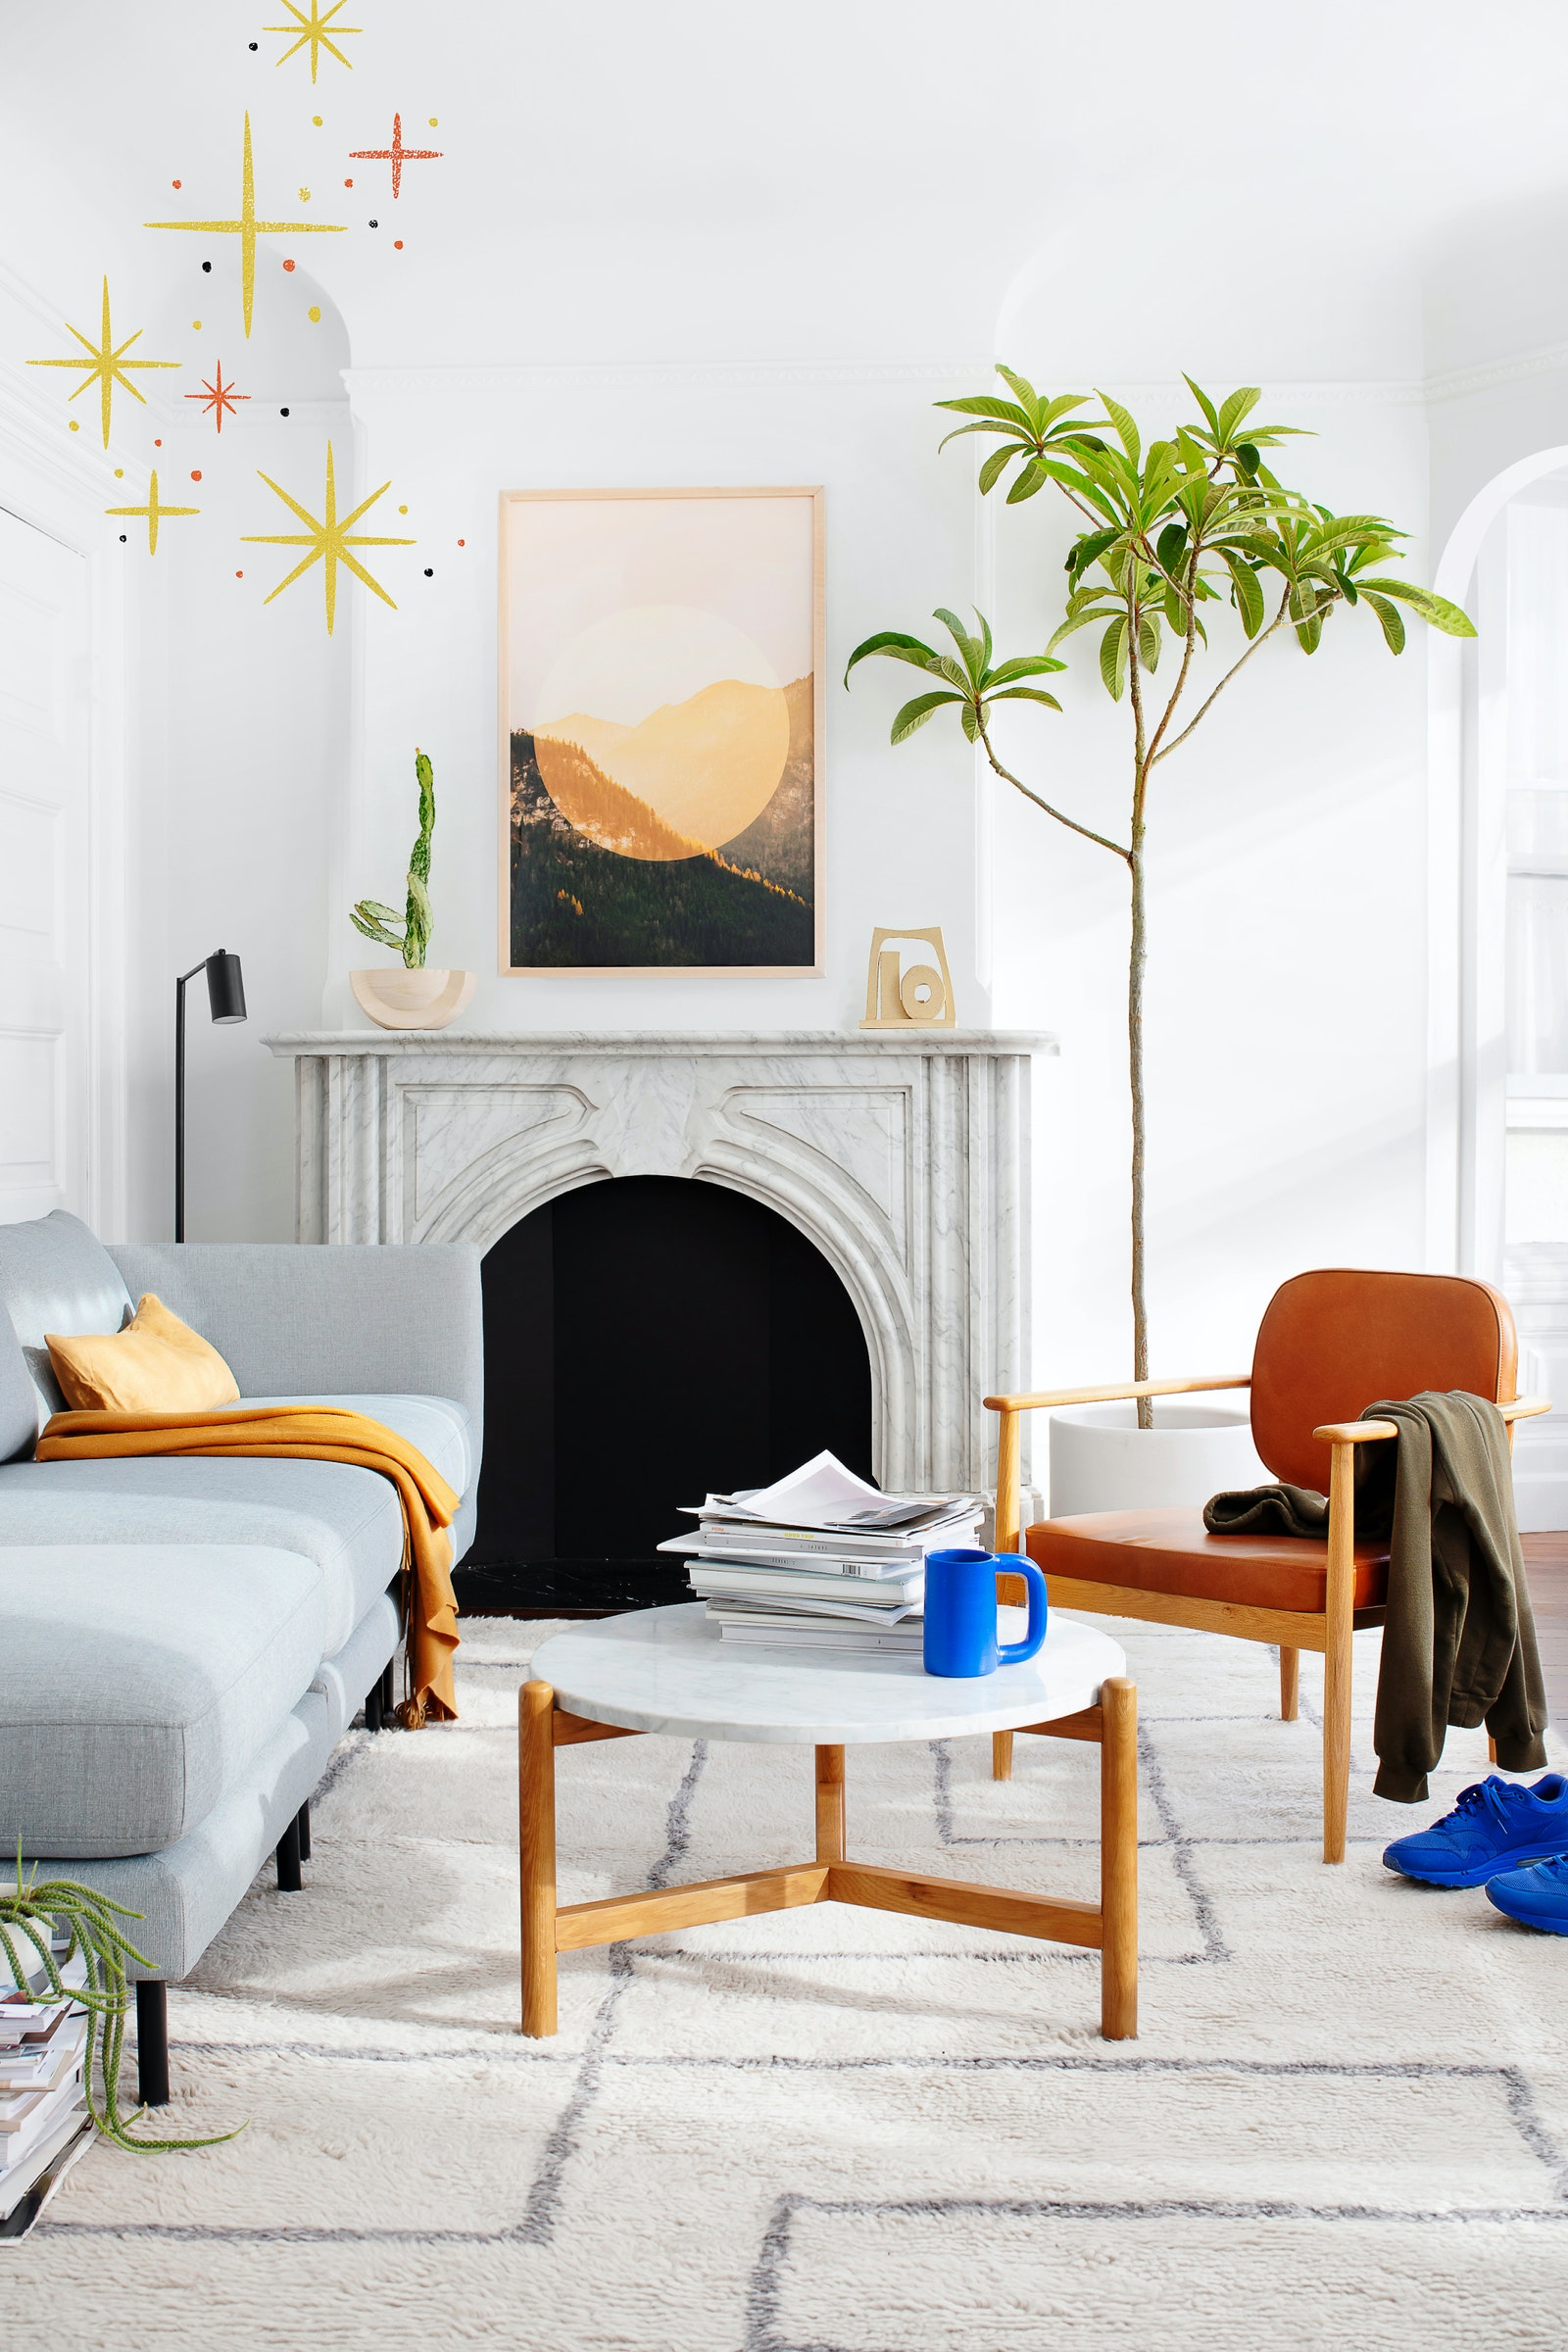 Easy Steps to Stage Your Home for Less